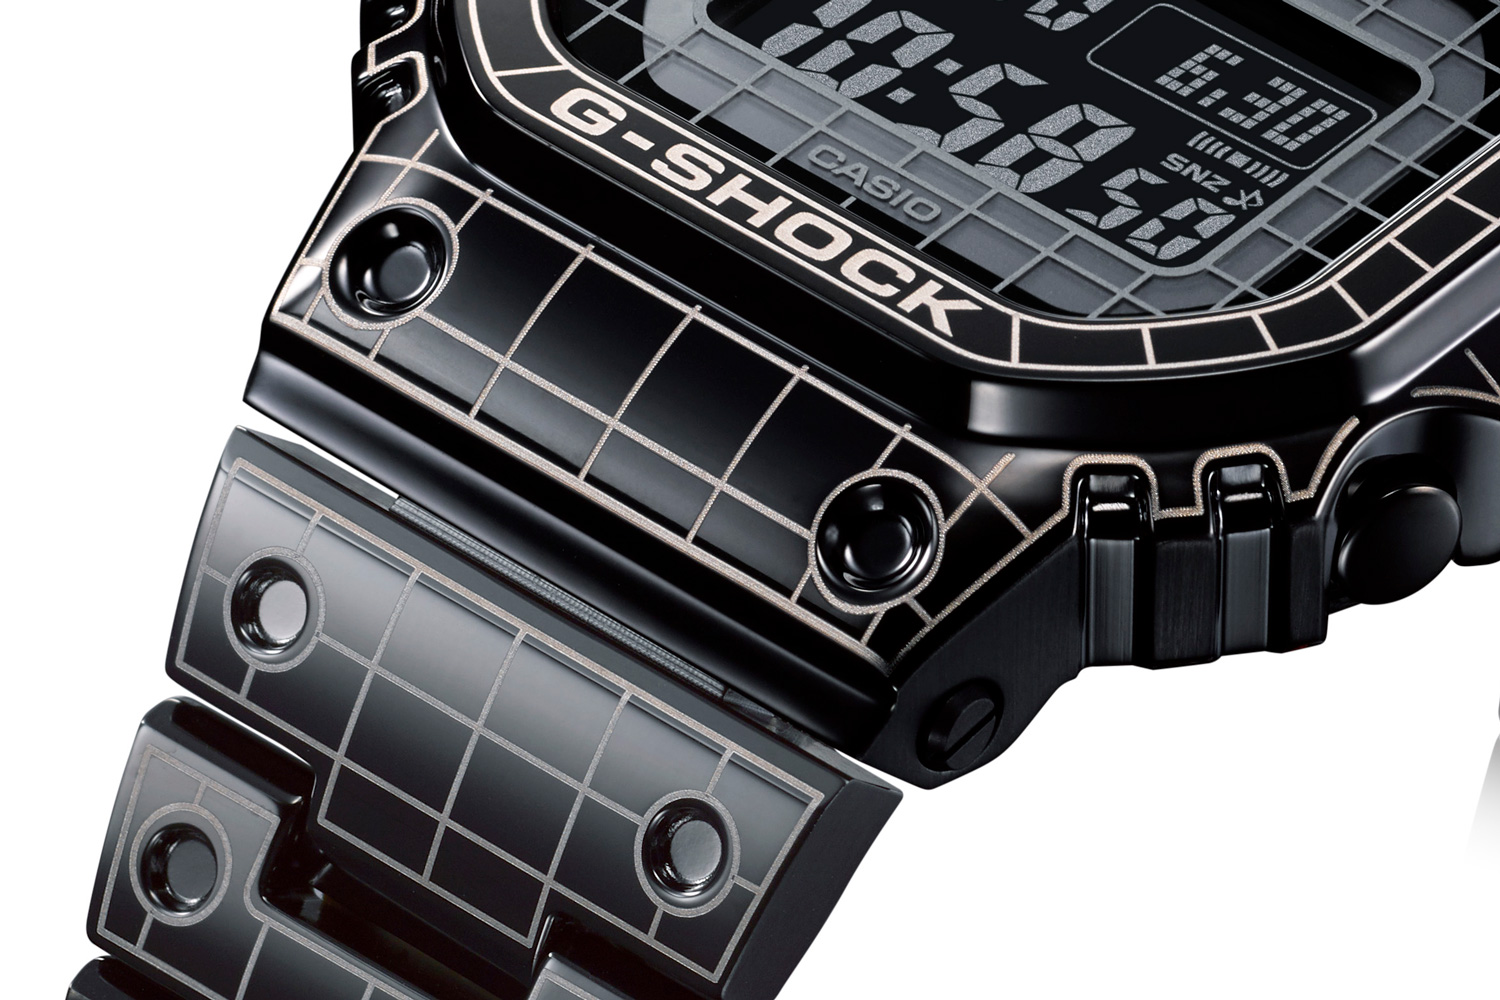 Laser etched grid design on the band of the Full Metal G-SHOCK GMW-B5000CS